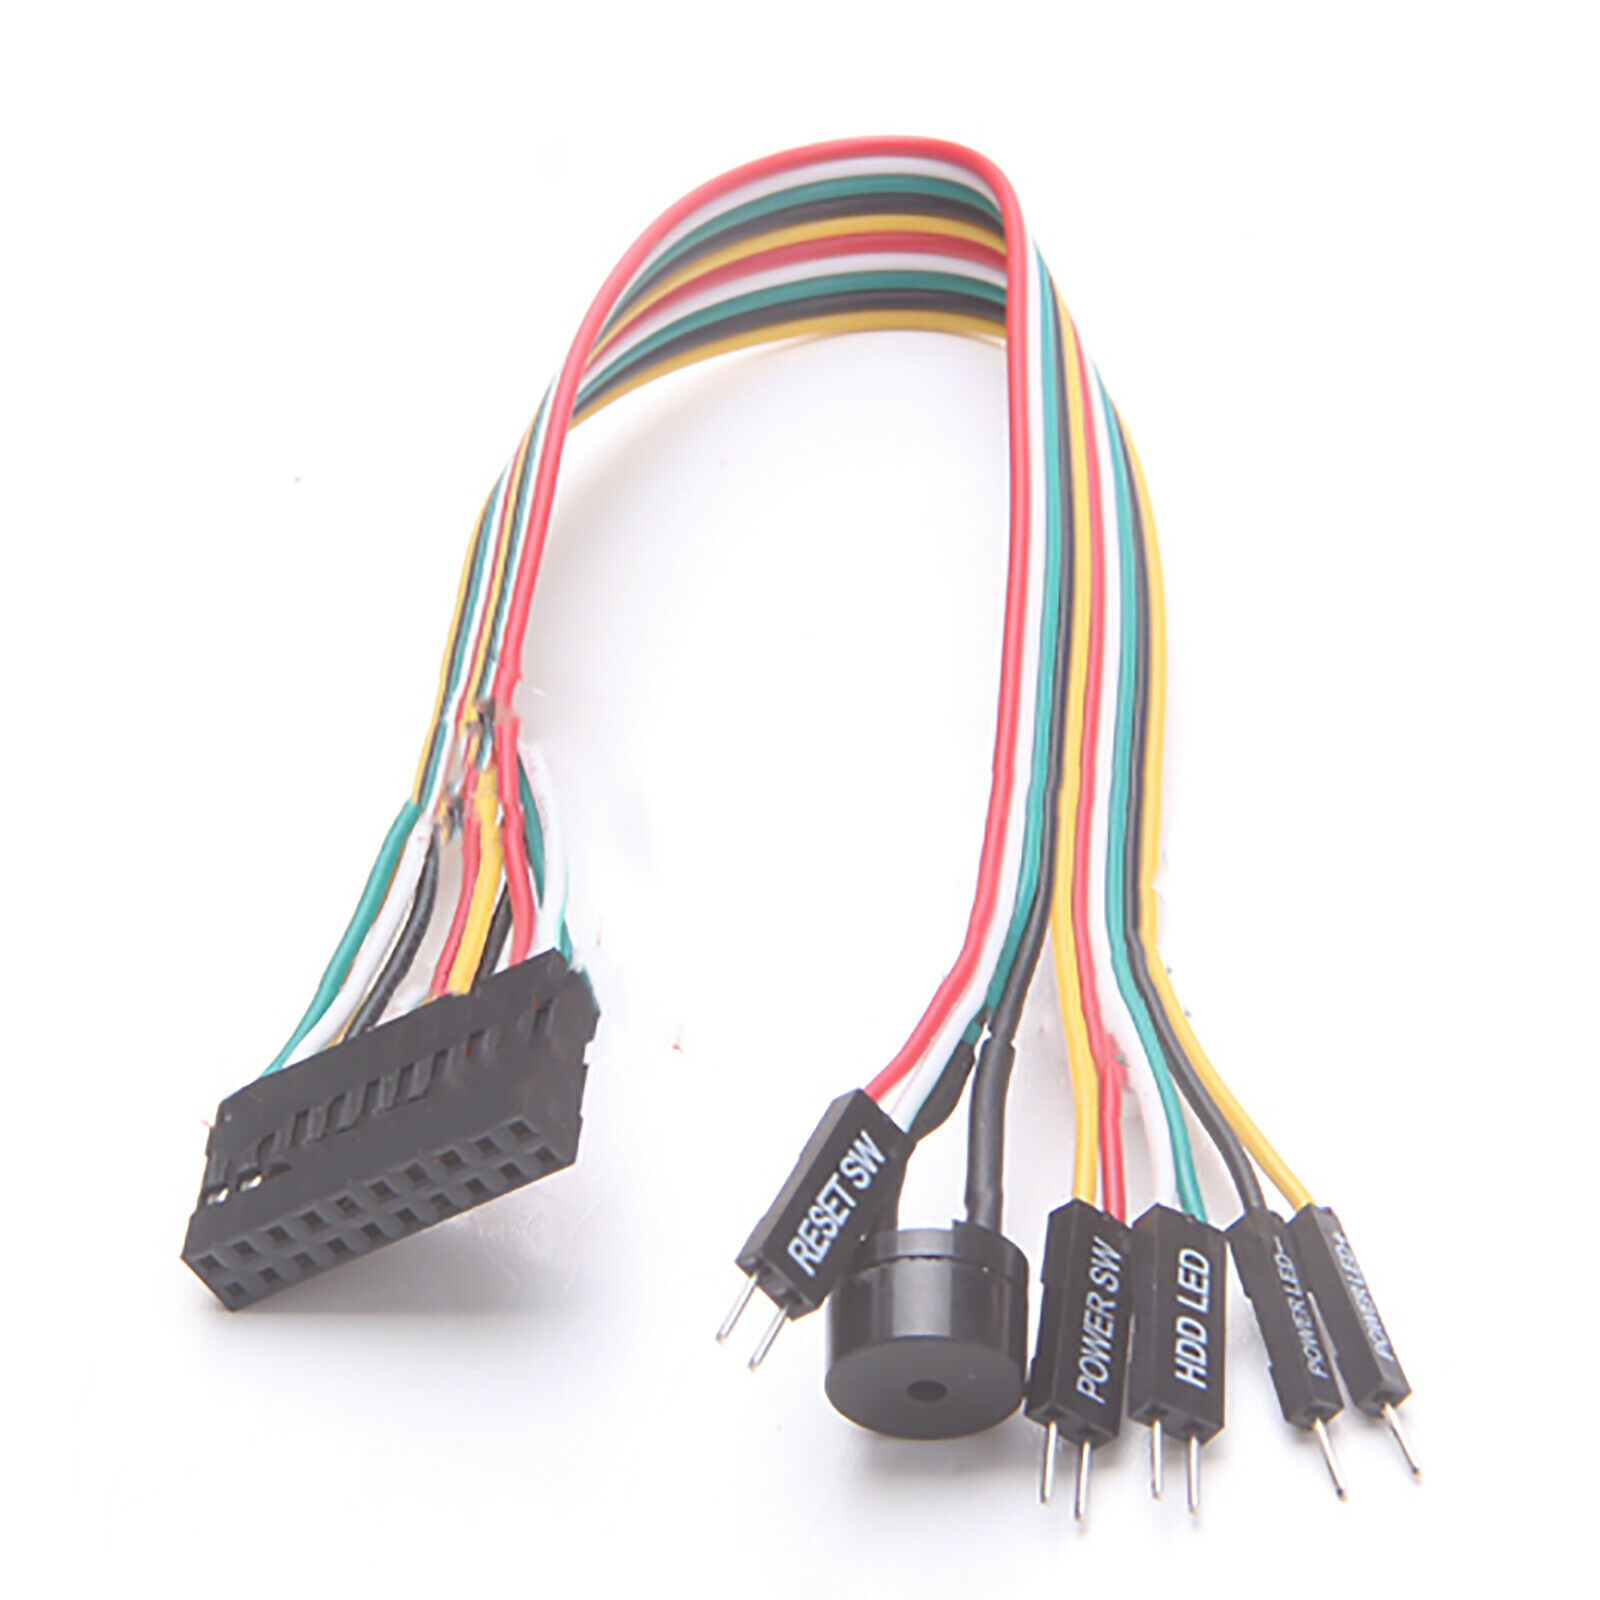 20cm Cable Integrated Jumper Line Extension Cord Connector Q-Connector For ASUS